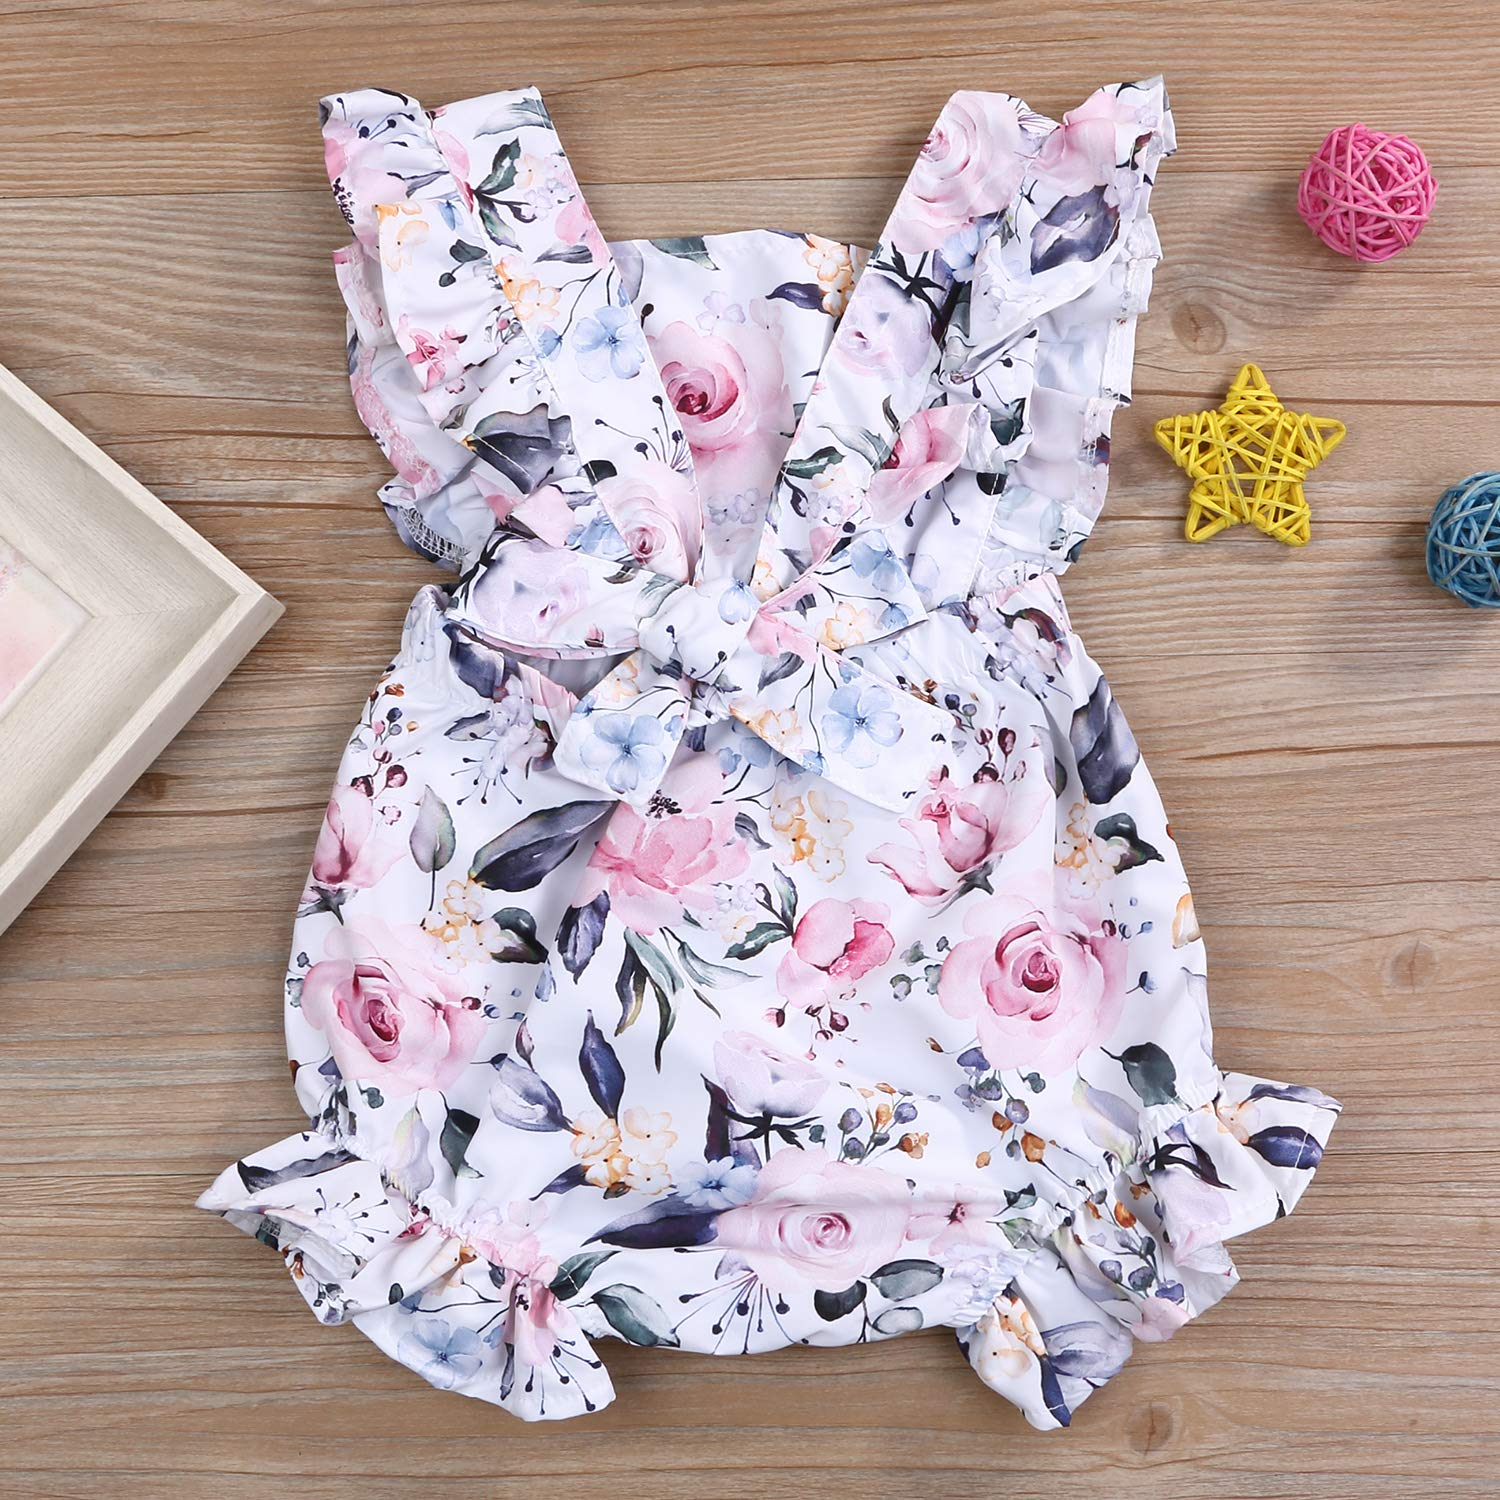 Newborn Baby Girl Clothes Floral Romper Ruffle Sleeve Summer Outfits Clothes Bowknot Set